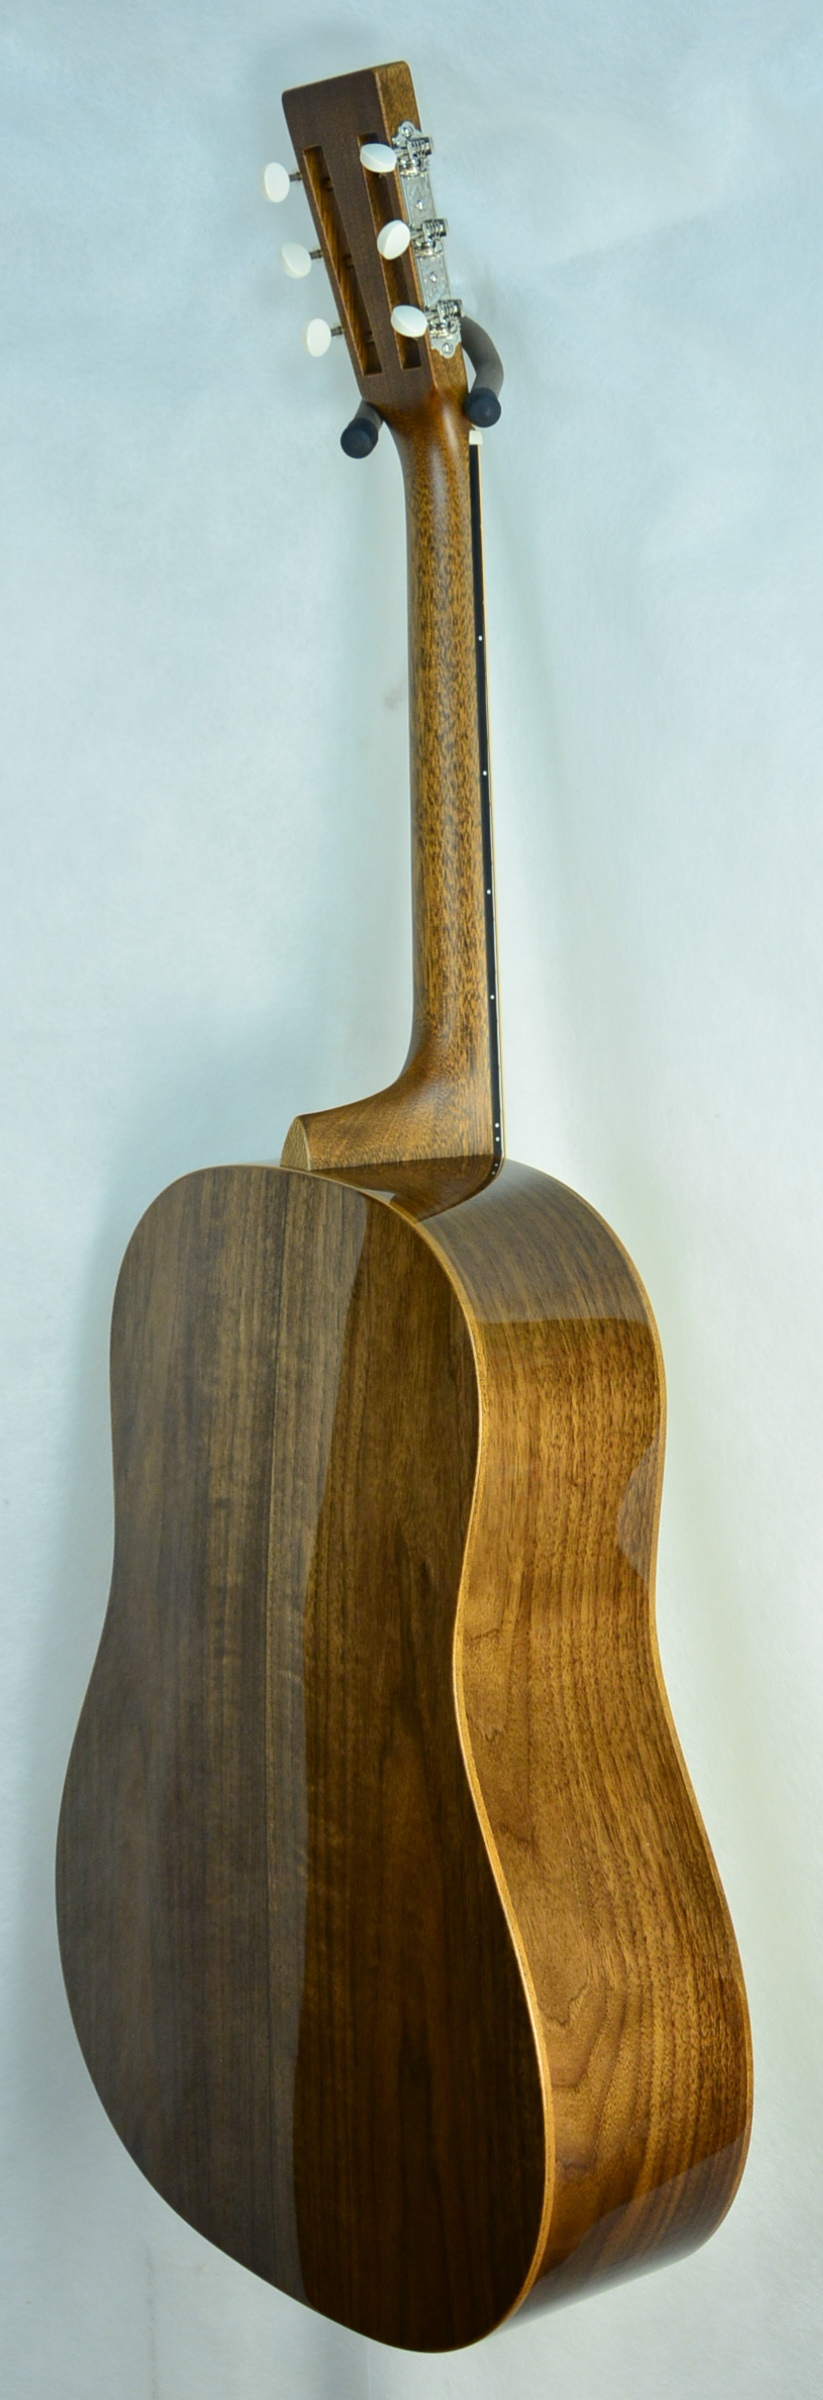 Q-2650124 S-1938283 D-12 Fret Black Walnut Adi (3).JPG